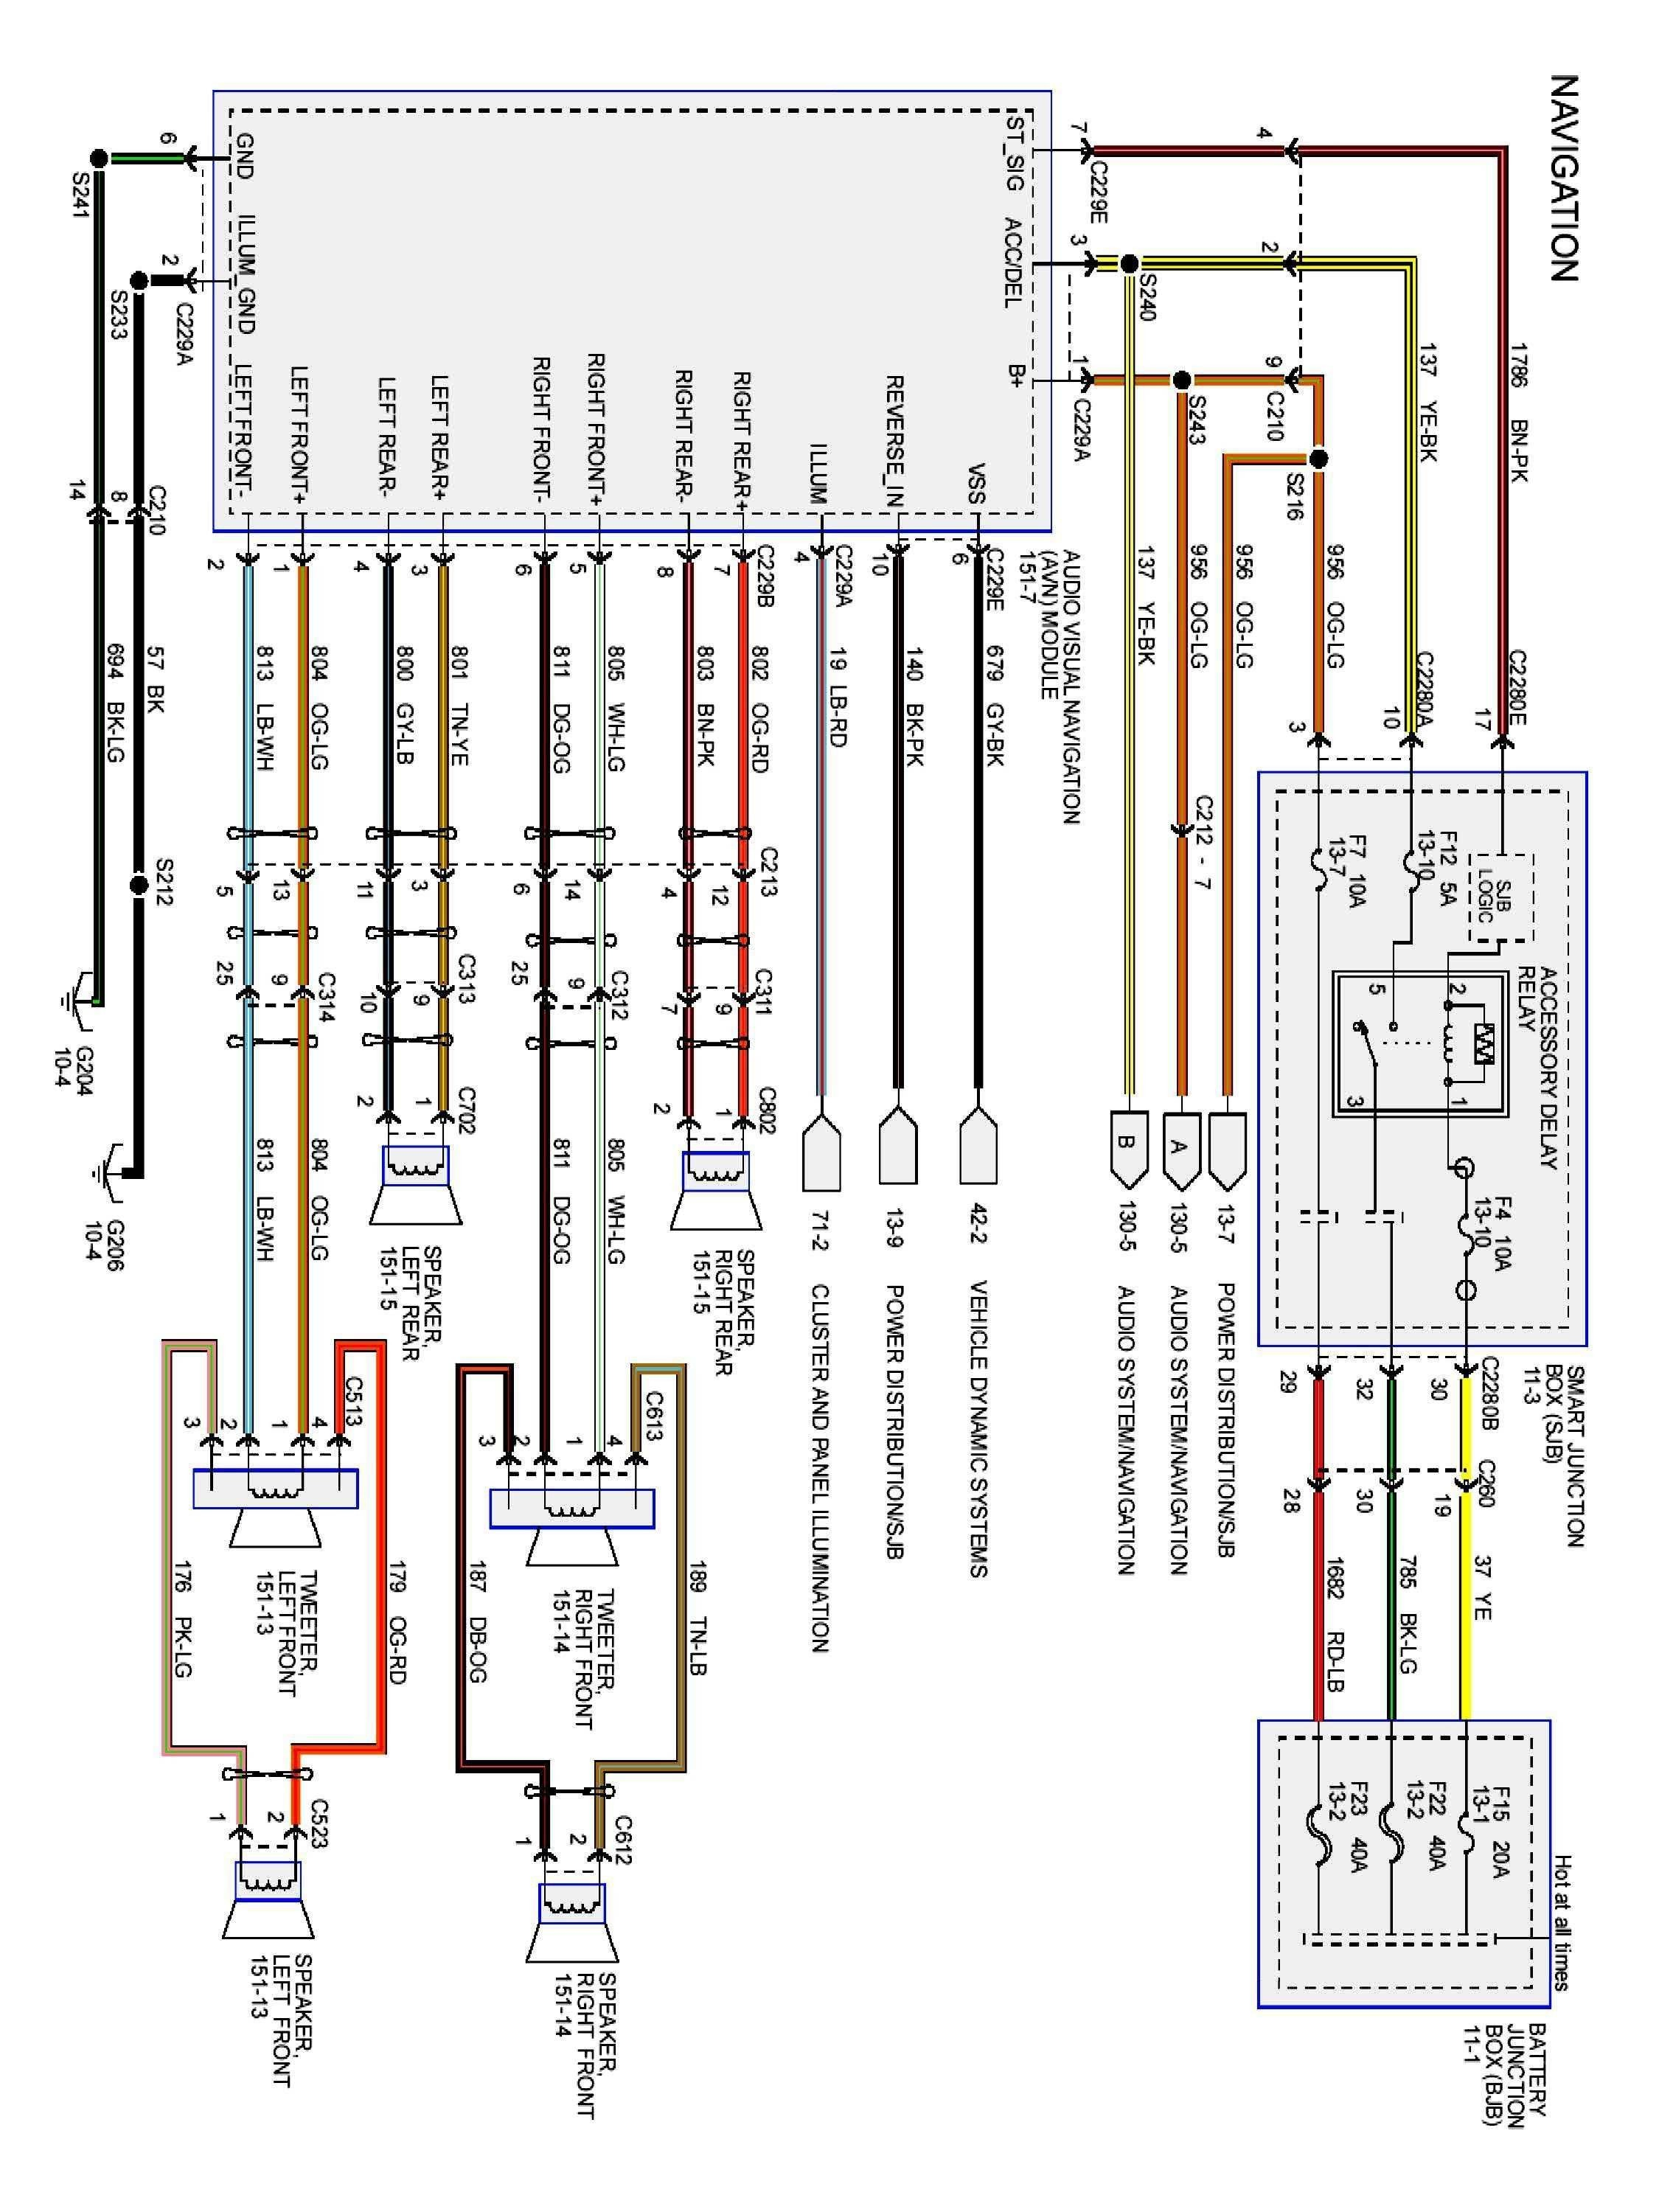 2010 Ford Fusion Radio Wiring Diagram from static-cdn.imageservice.cloud